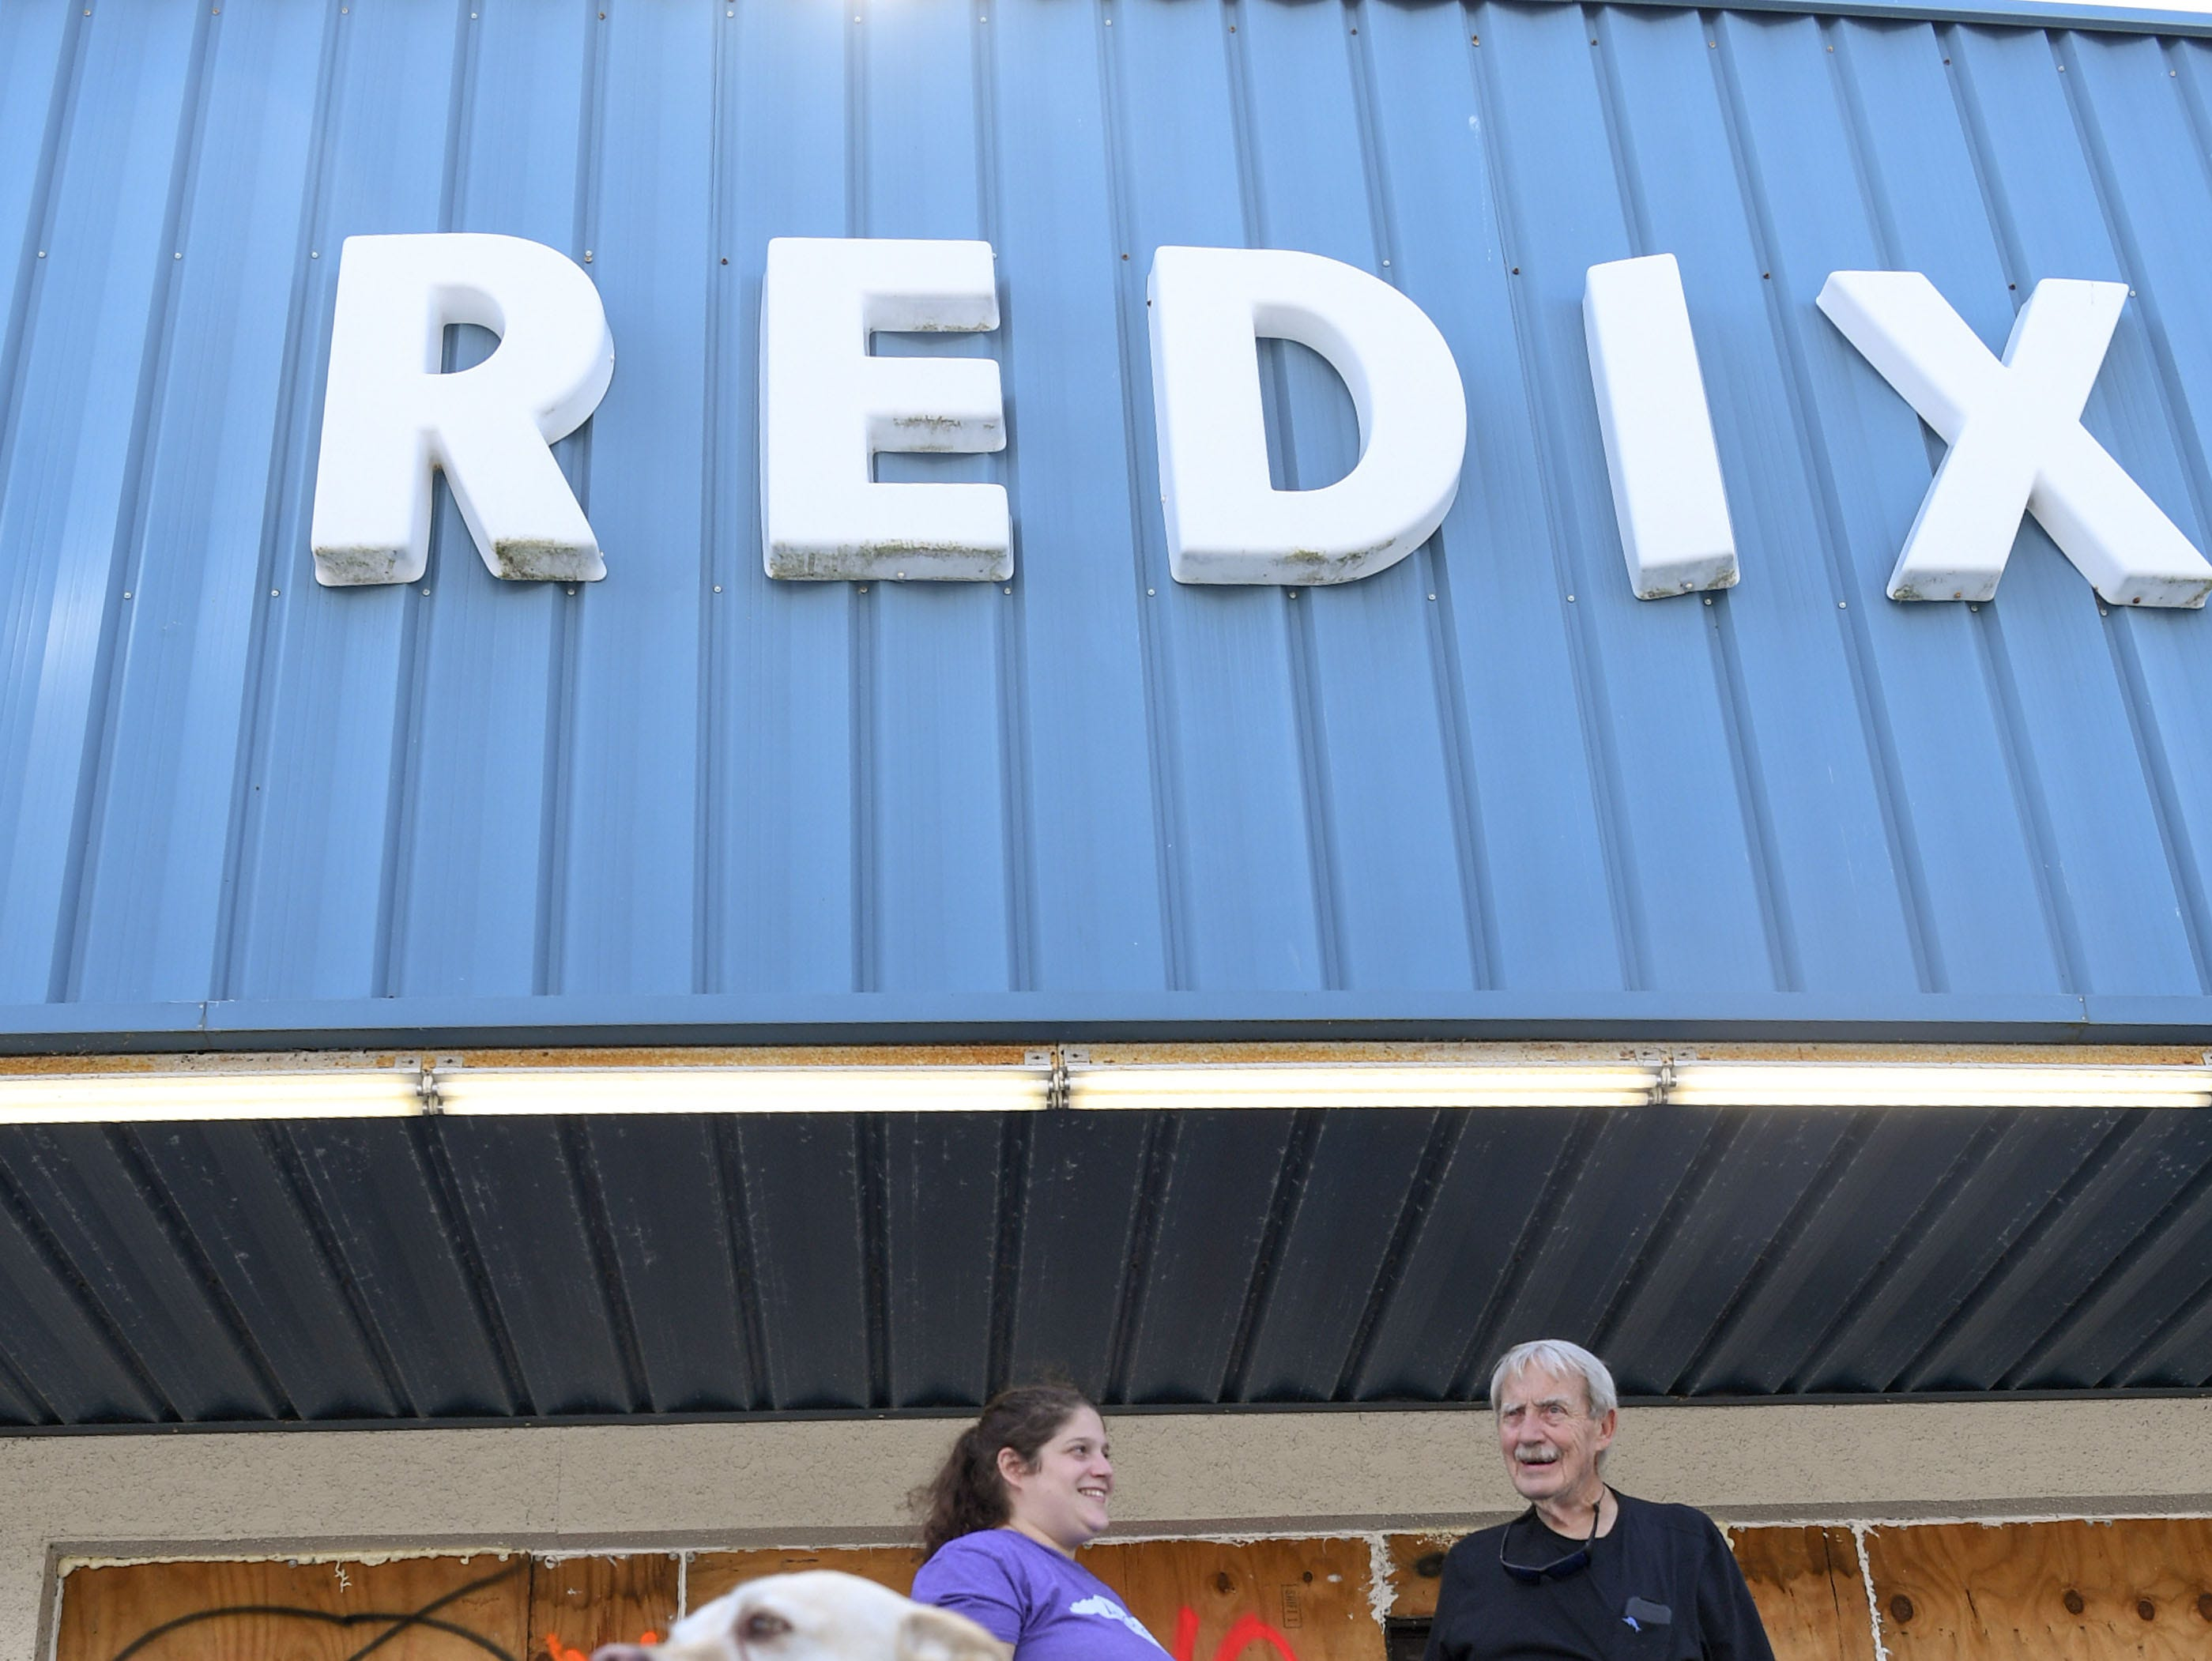 Waylon the dog, left, Meredith Reddick, middle, and her father Gordon owner of Redix store, stand with plywood covered windows Sept.  11, 2018. They have used the same boards since 1993, and wrote names for each storm since then.